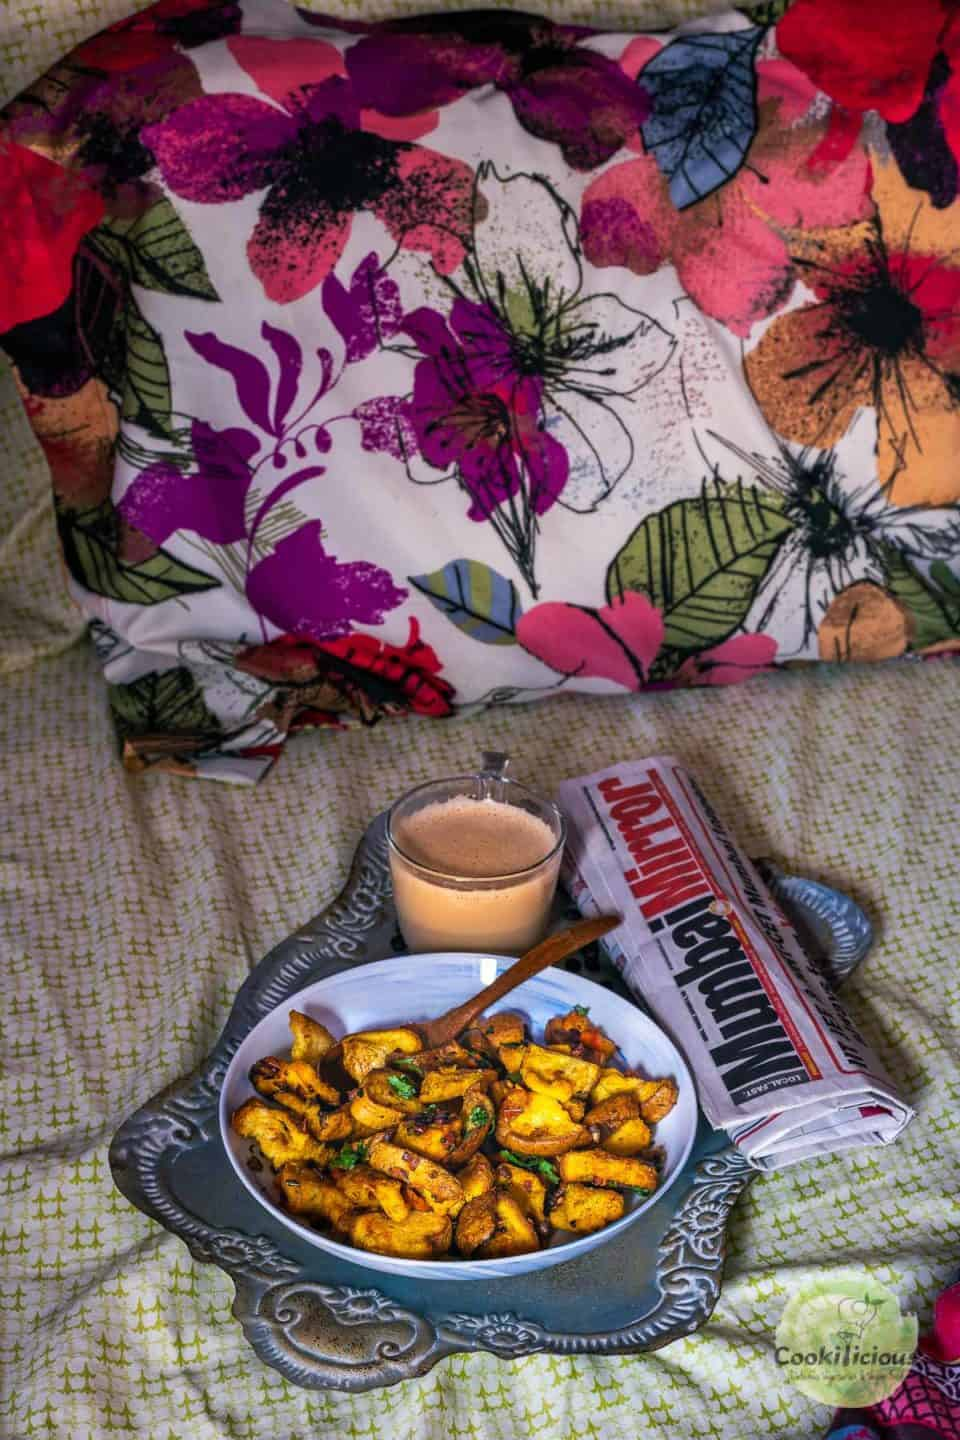 a tray with coffee, newspaper and a plate of bread upma placed on a bed